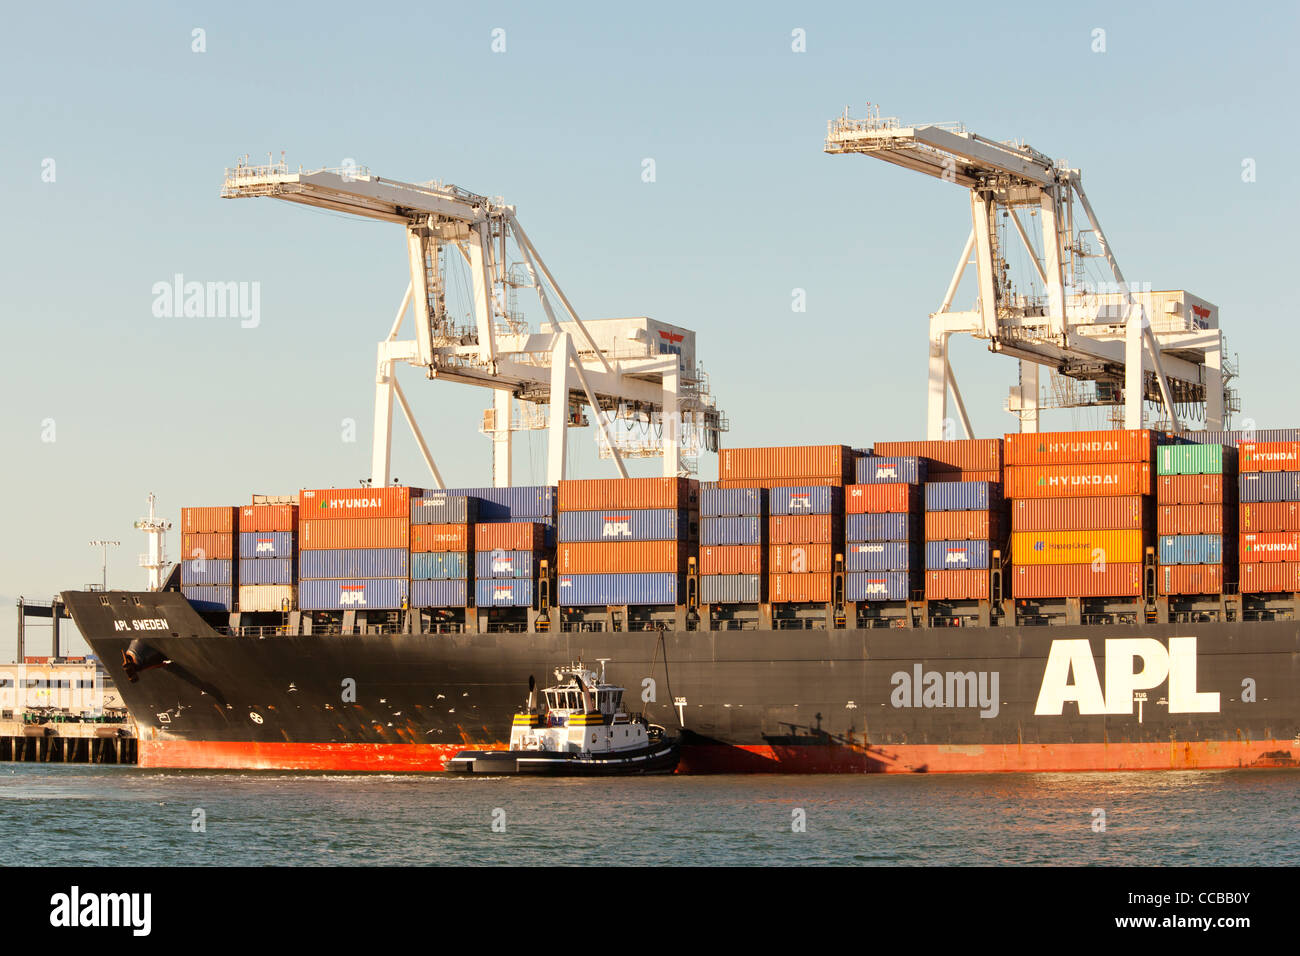 Gantry cranes ready to unload cargo containers from APL ship at Port of Oakland - Stock Image